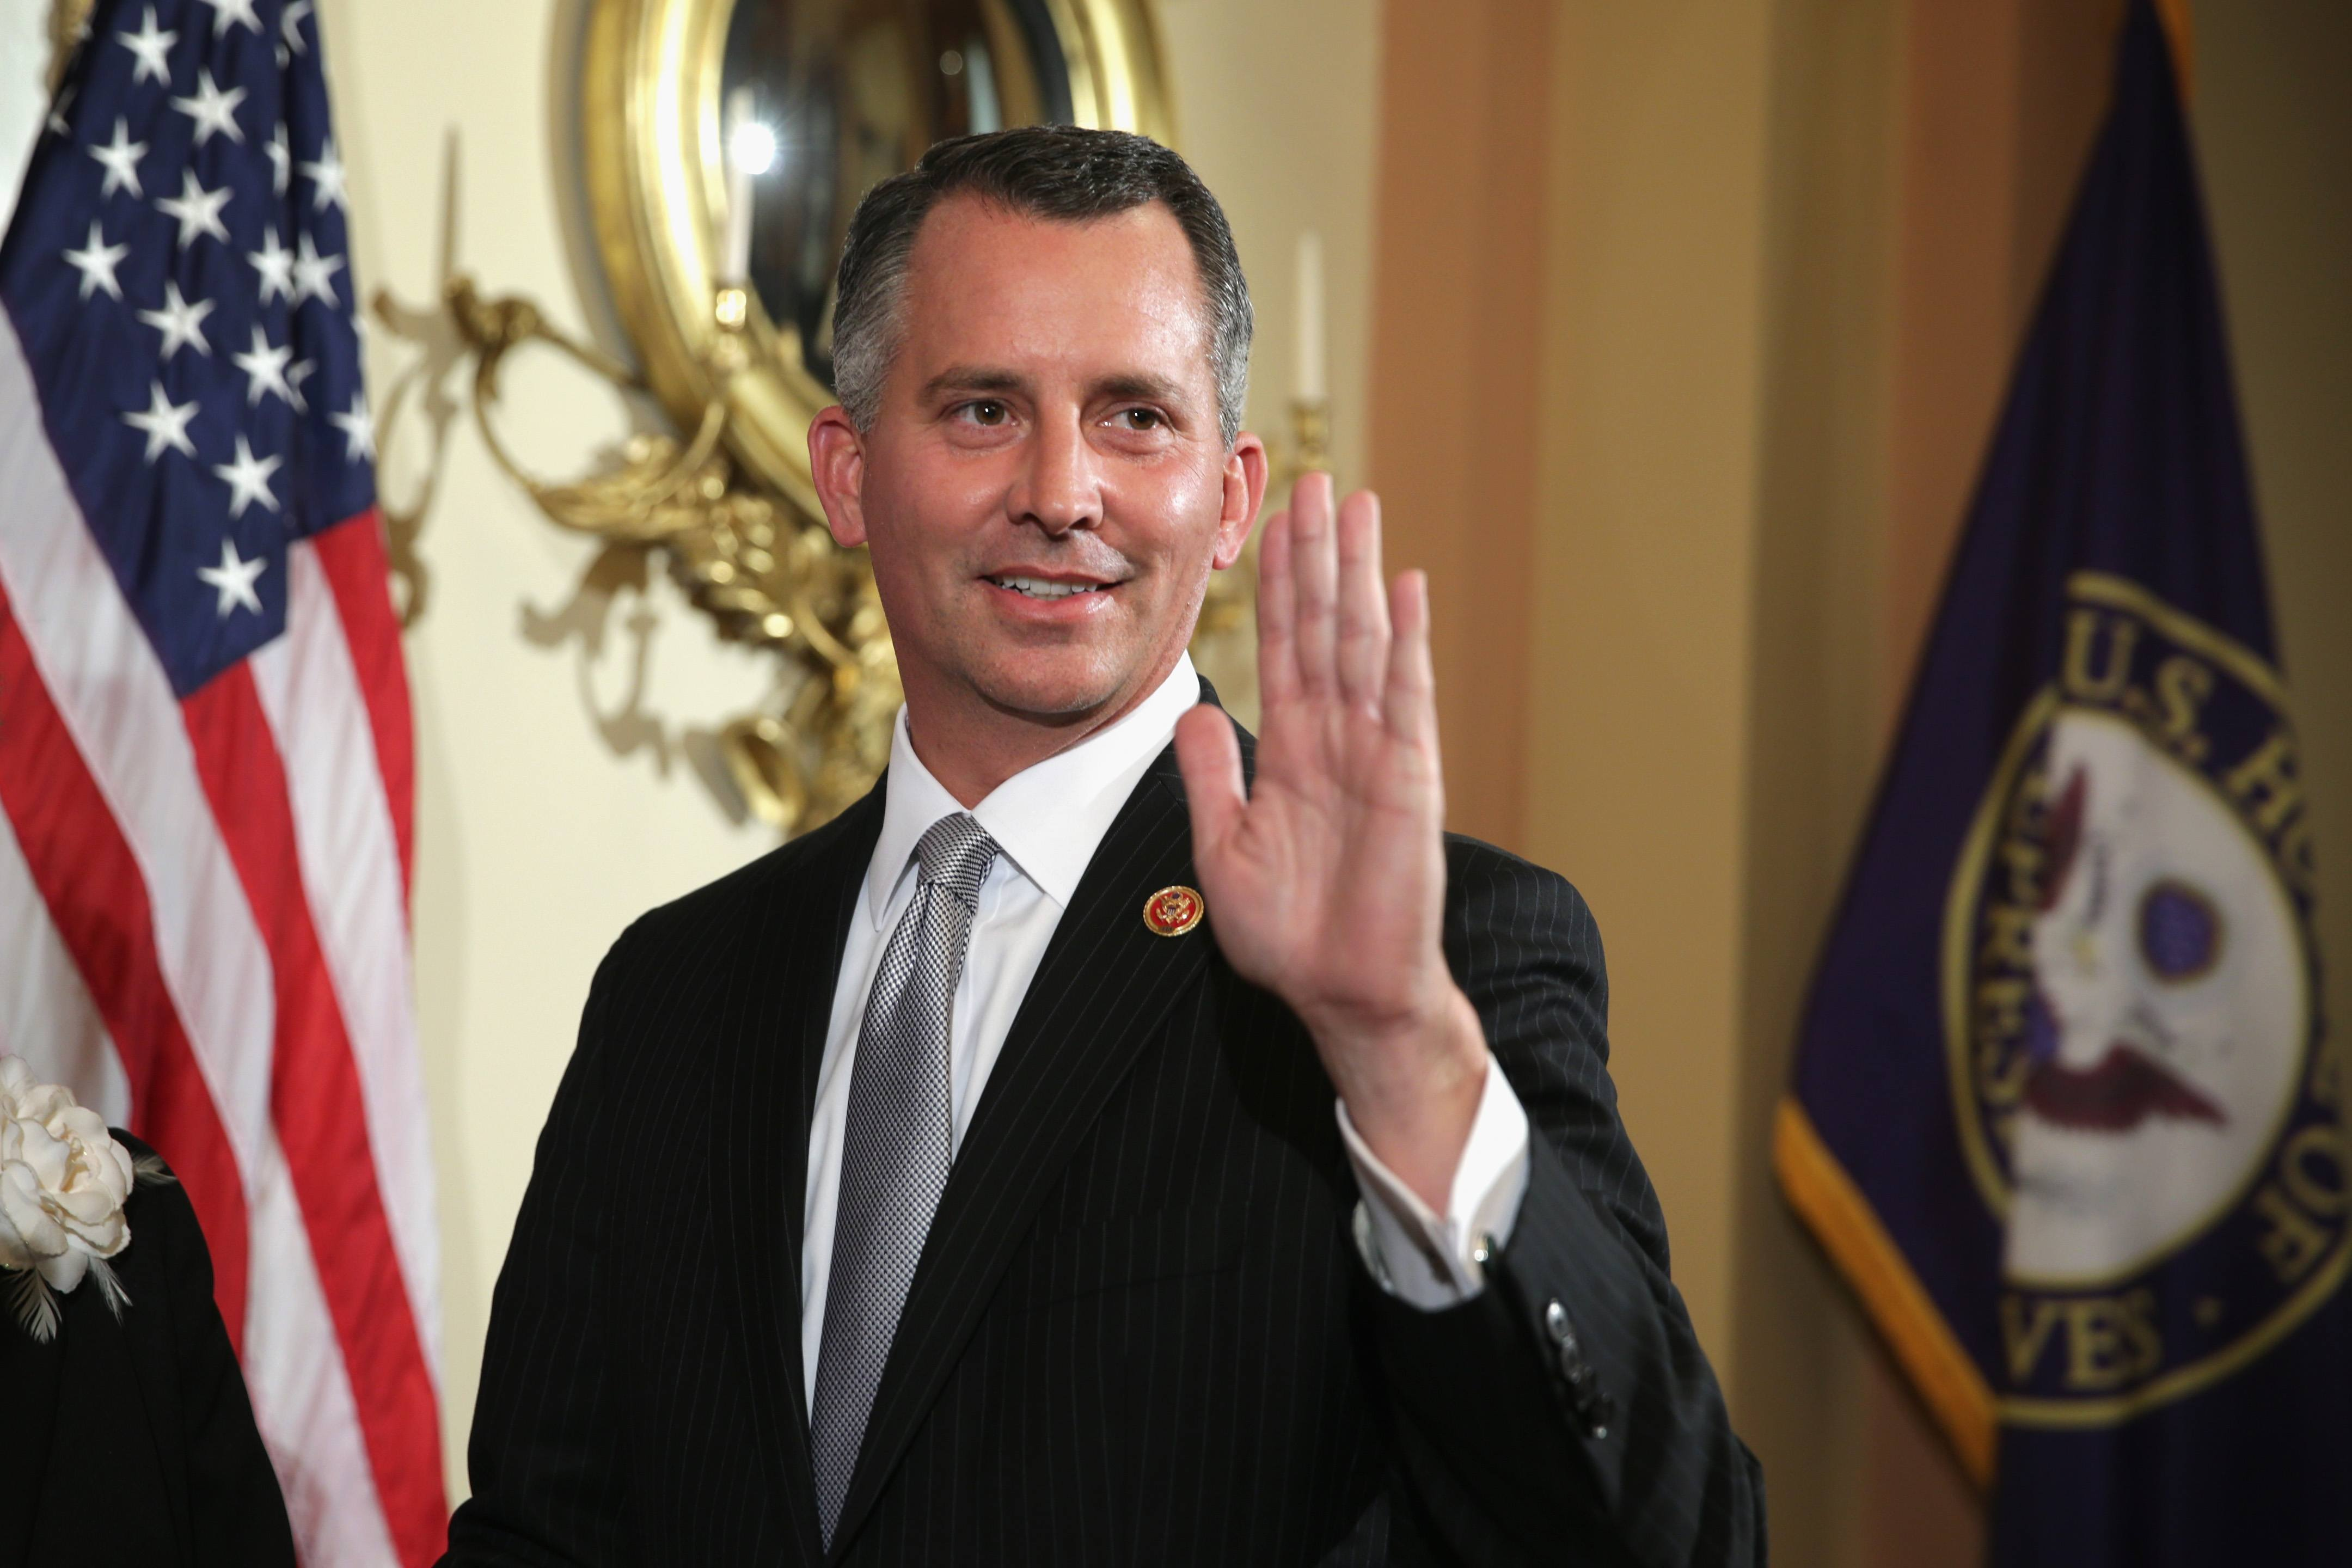 David Jolly Of Florida At US Capitol